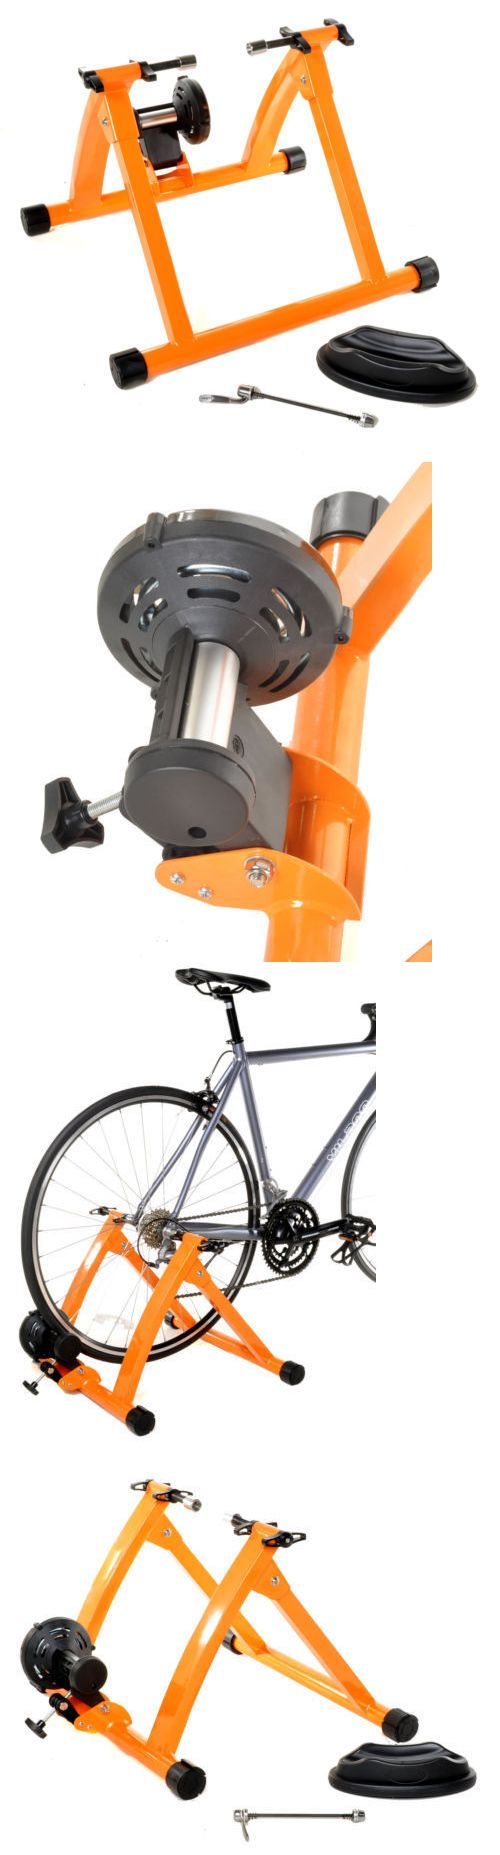 Trainers and Rollers 36141: Conquer Indoor Bike Trainer Portable Exercise Bicycle Magnetic Stand -> BUY IT NOW ONLY: $54.95 on eBay!